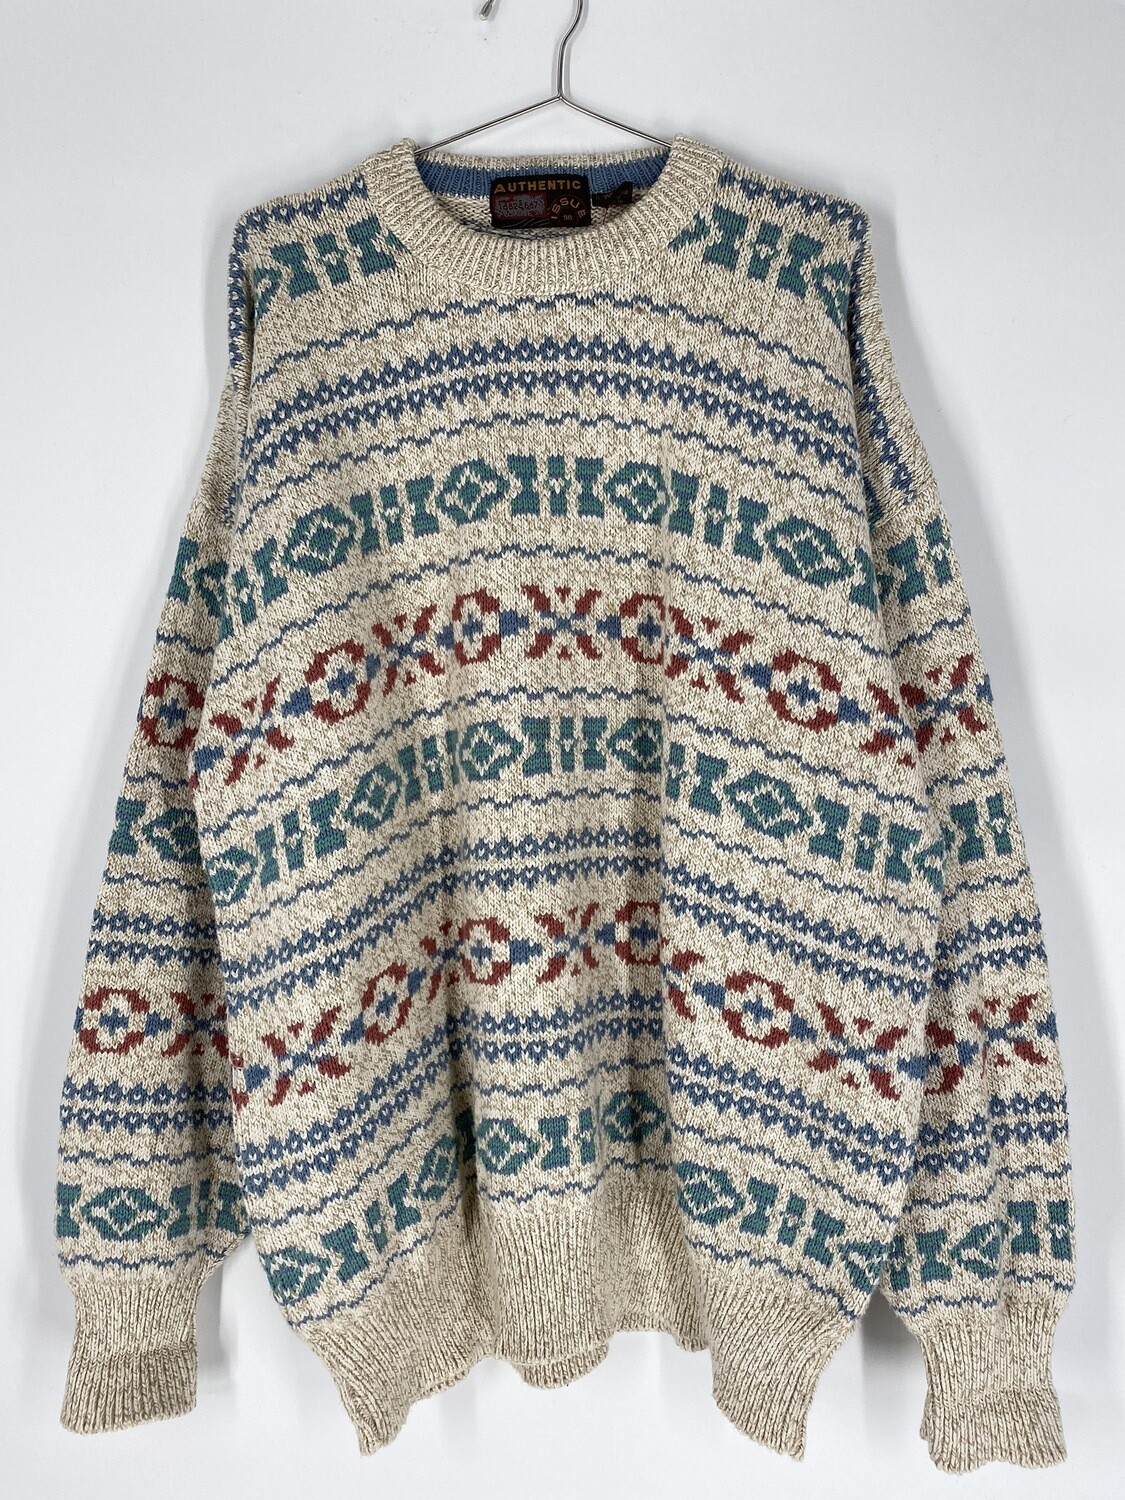 Patterned Cotton Sweater Size L